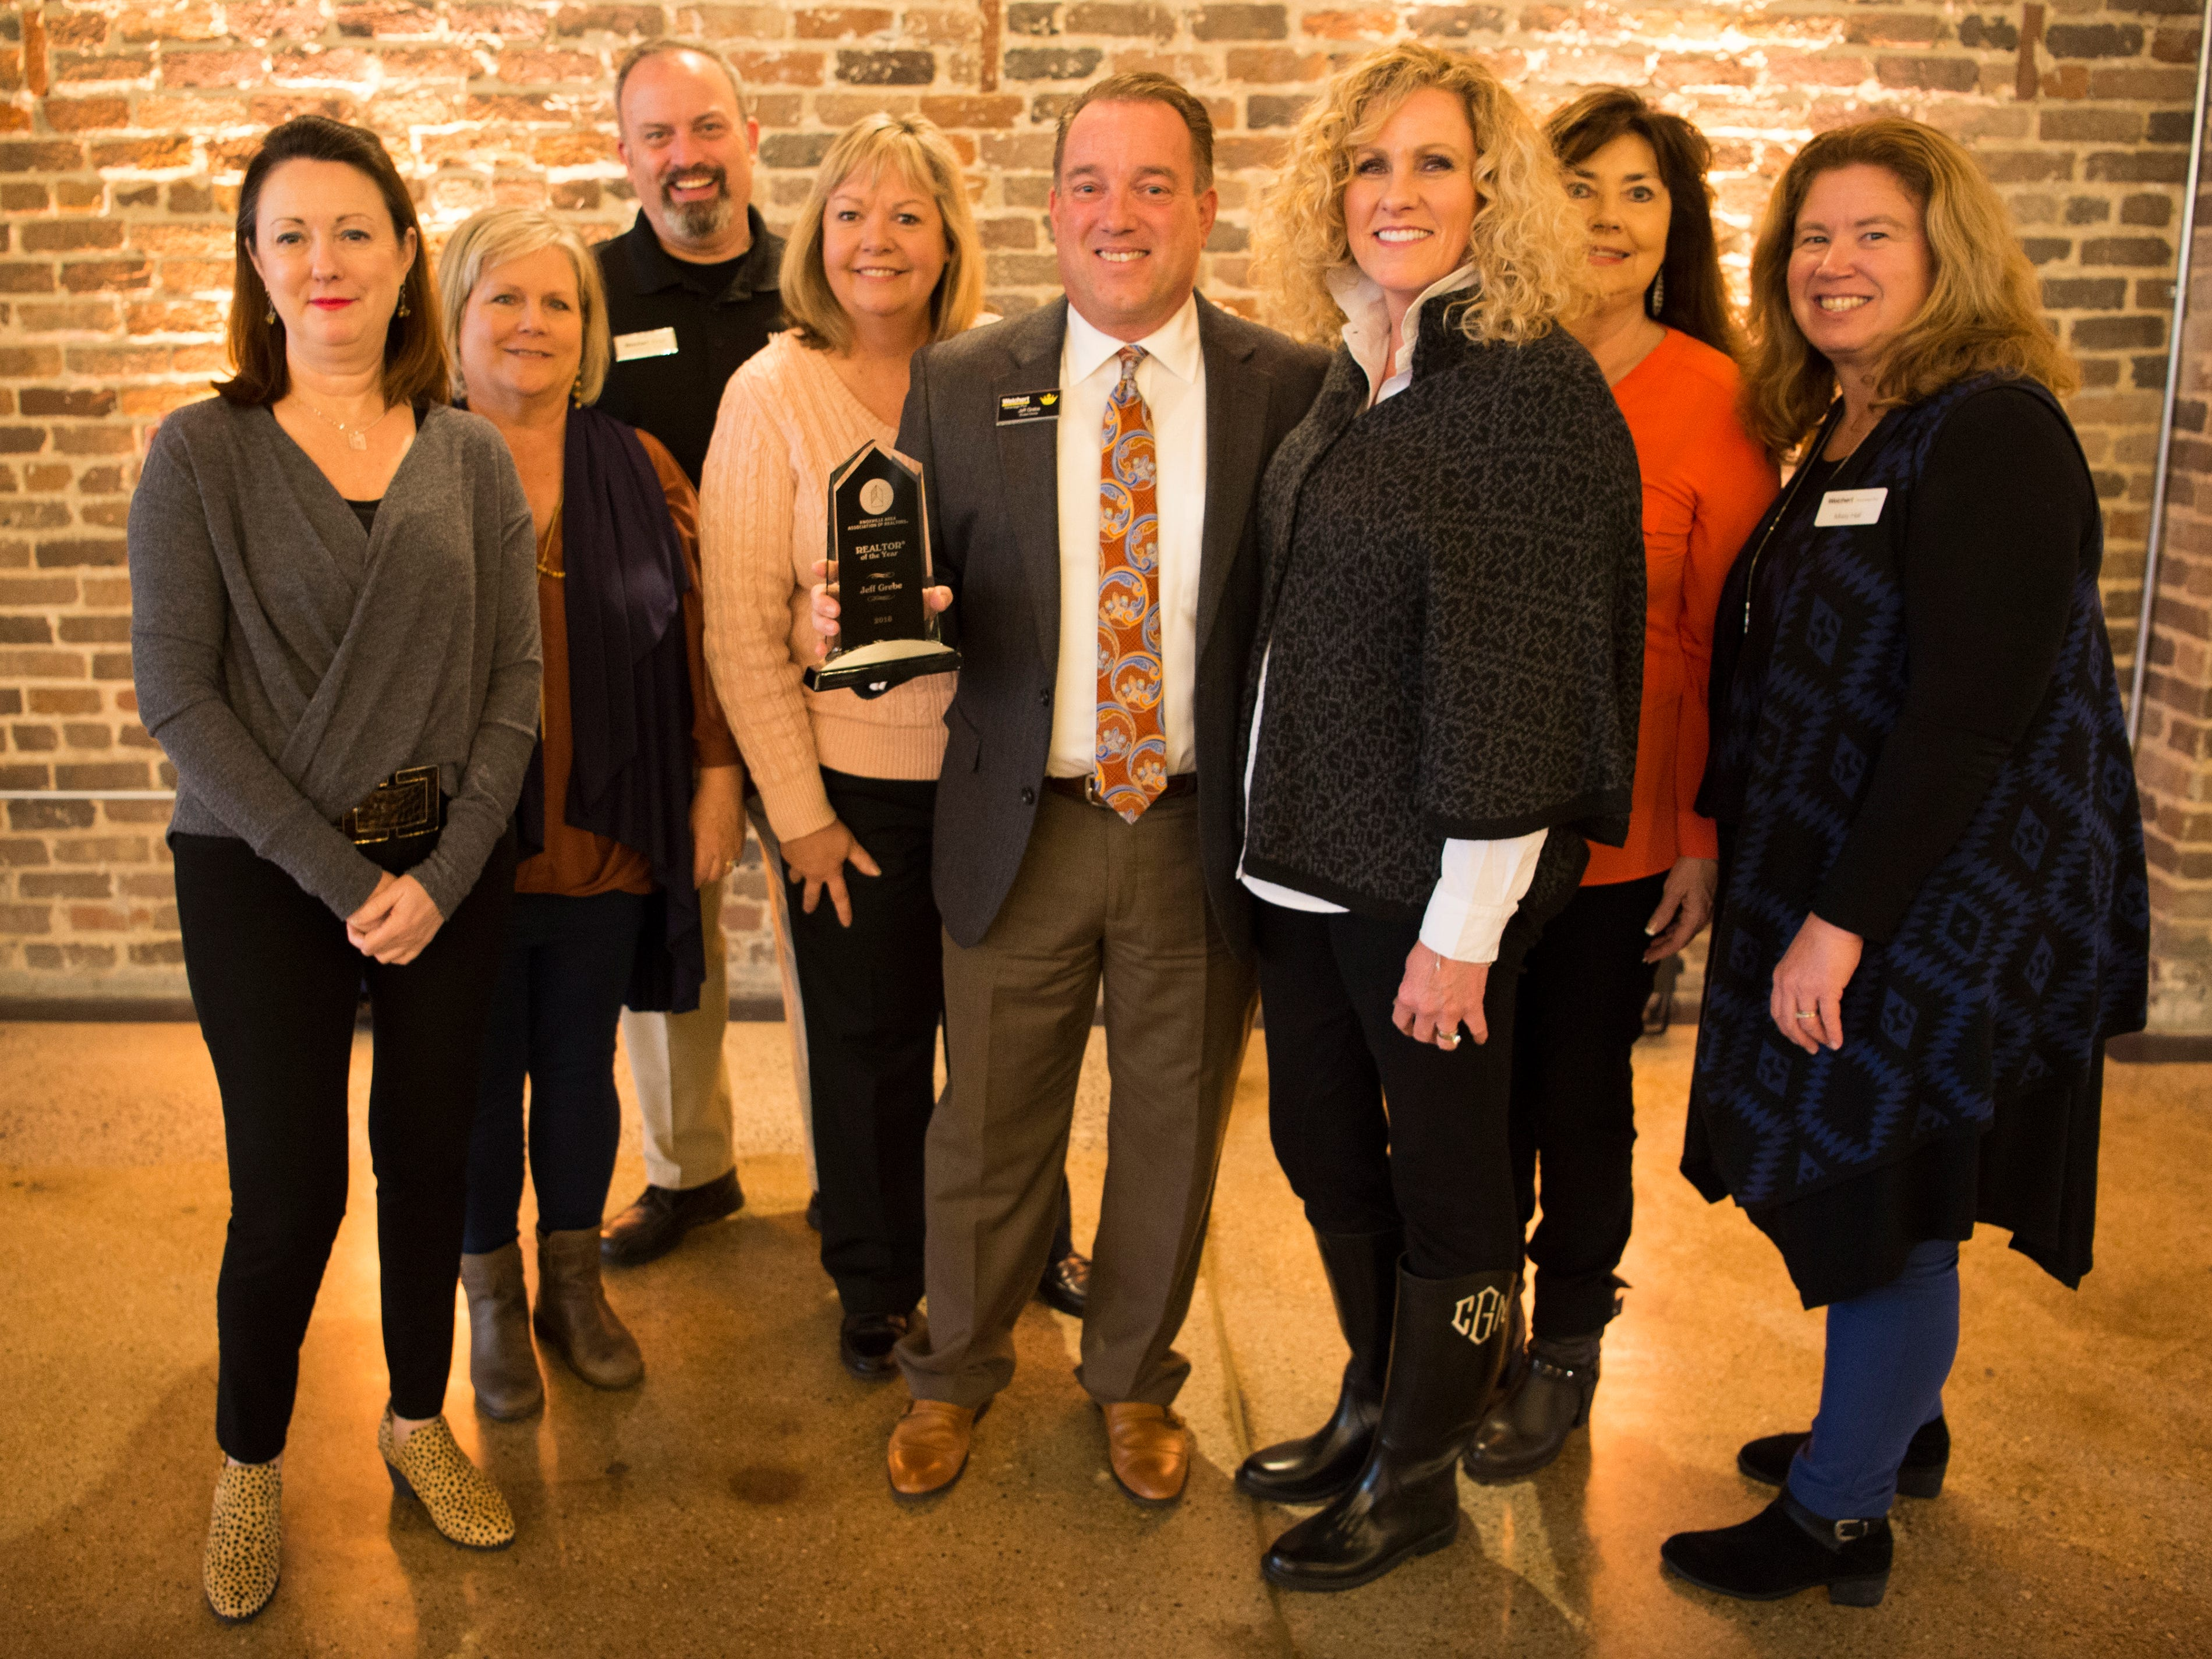 Scenes from the Commercial and Residential Real Estate Awards held at The Press Room in Knoxville on Tuesday, February 12, 2019.